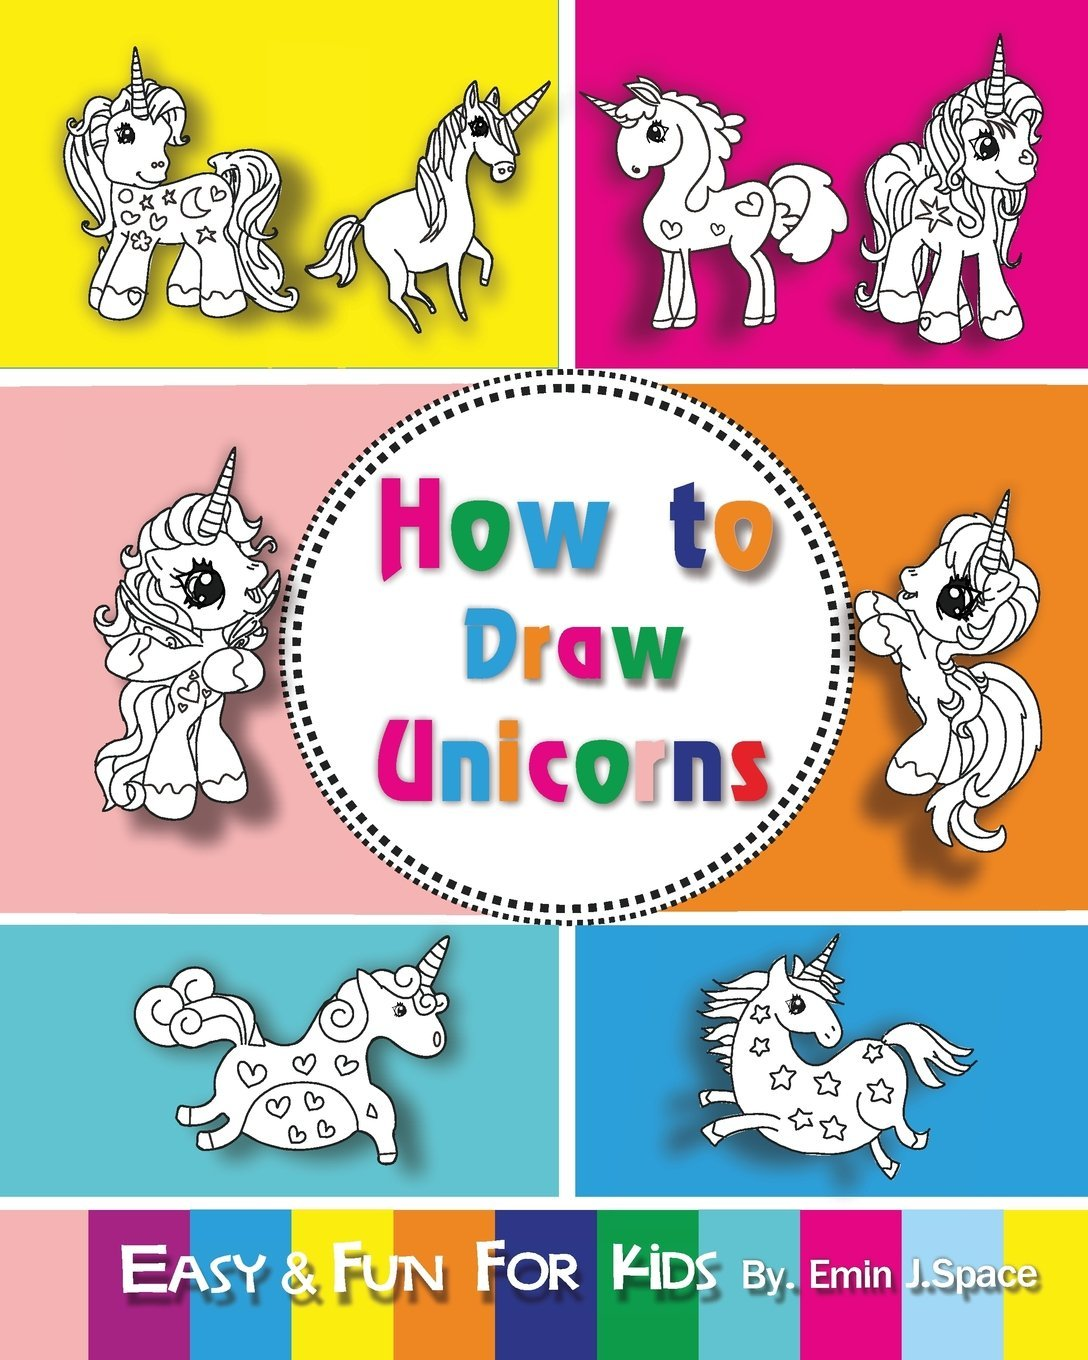 How to draw unicorns easy and fun step by step drawing and activity book for kids 6 8 paperback july 30 2018